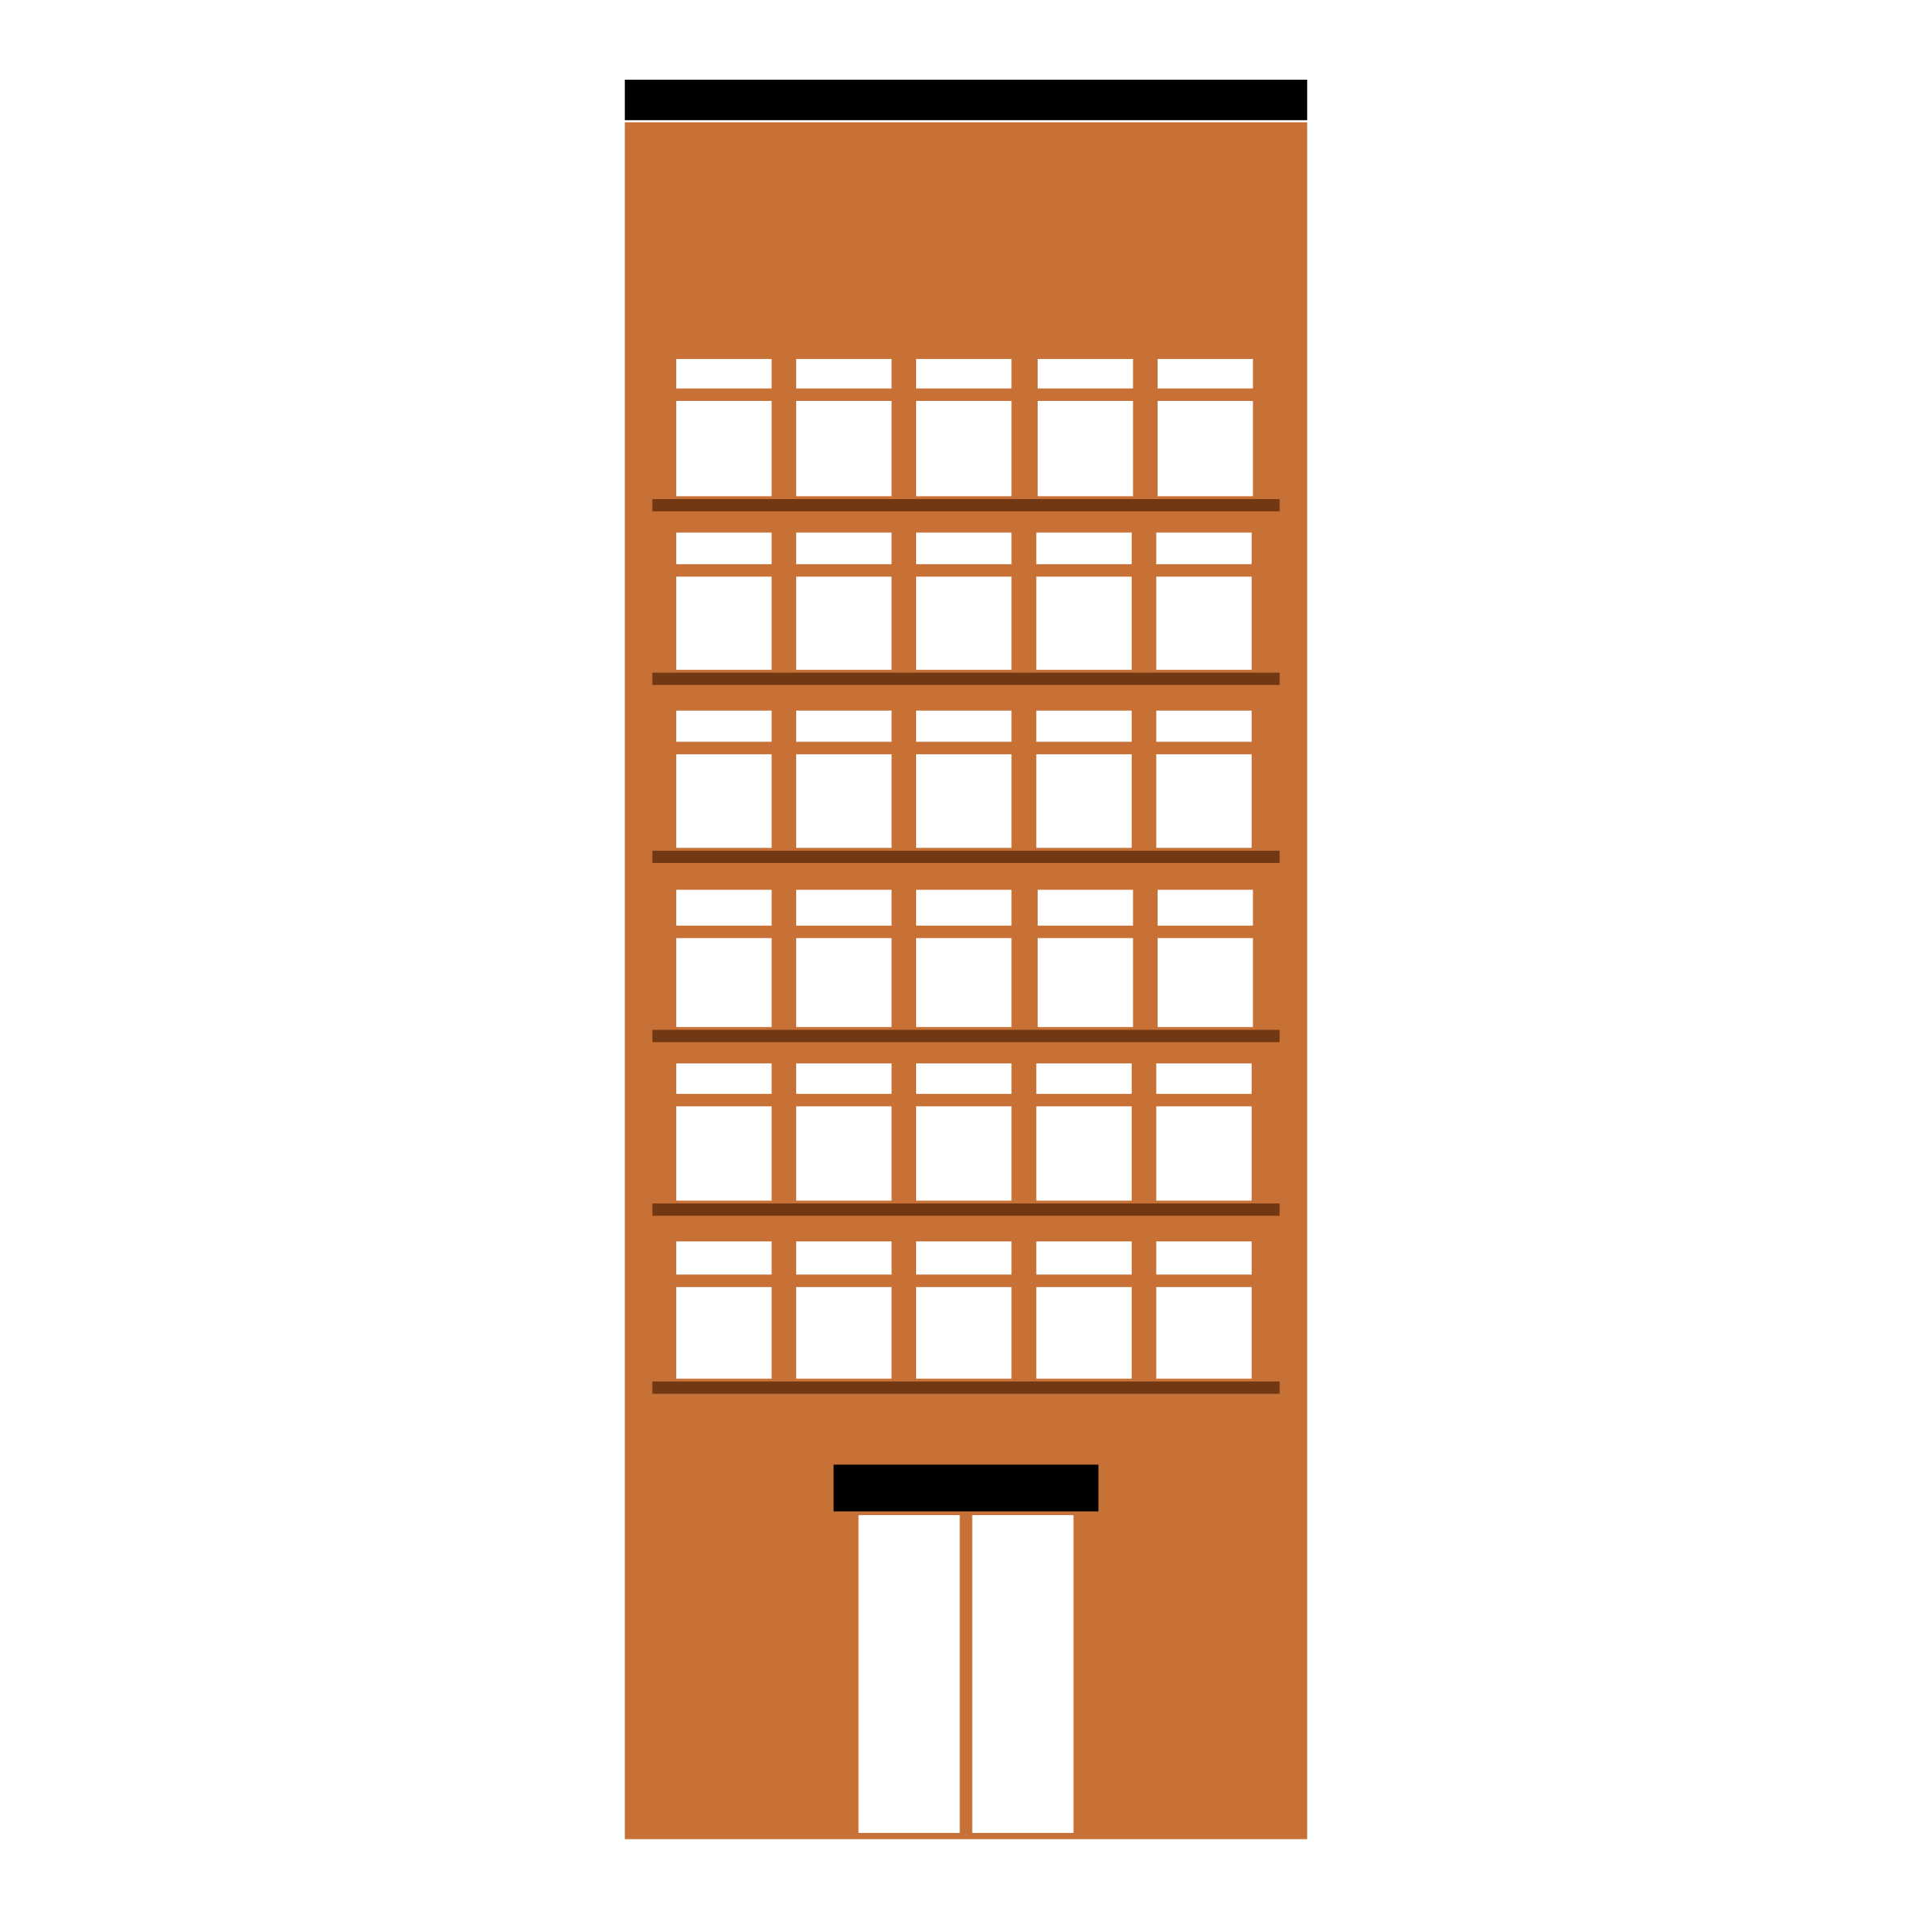 PNG Tall Building - 59214